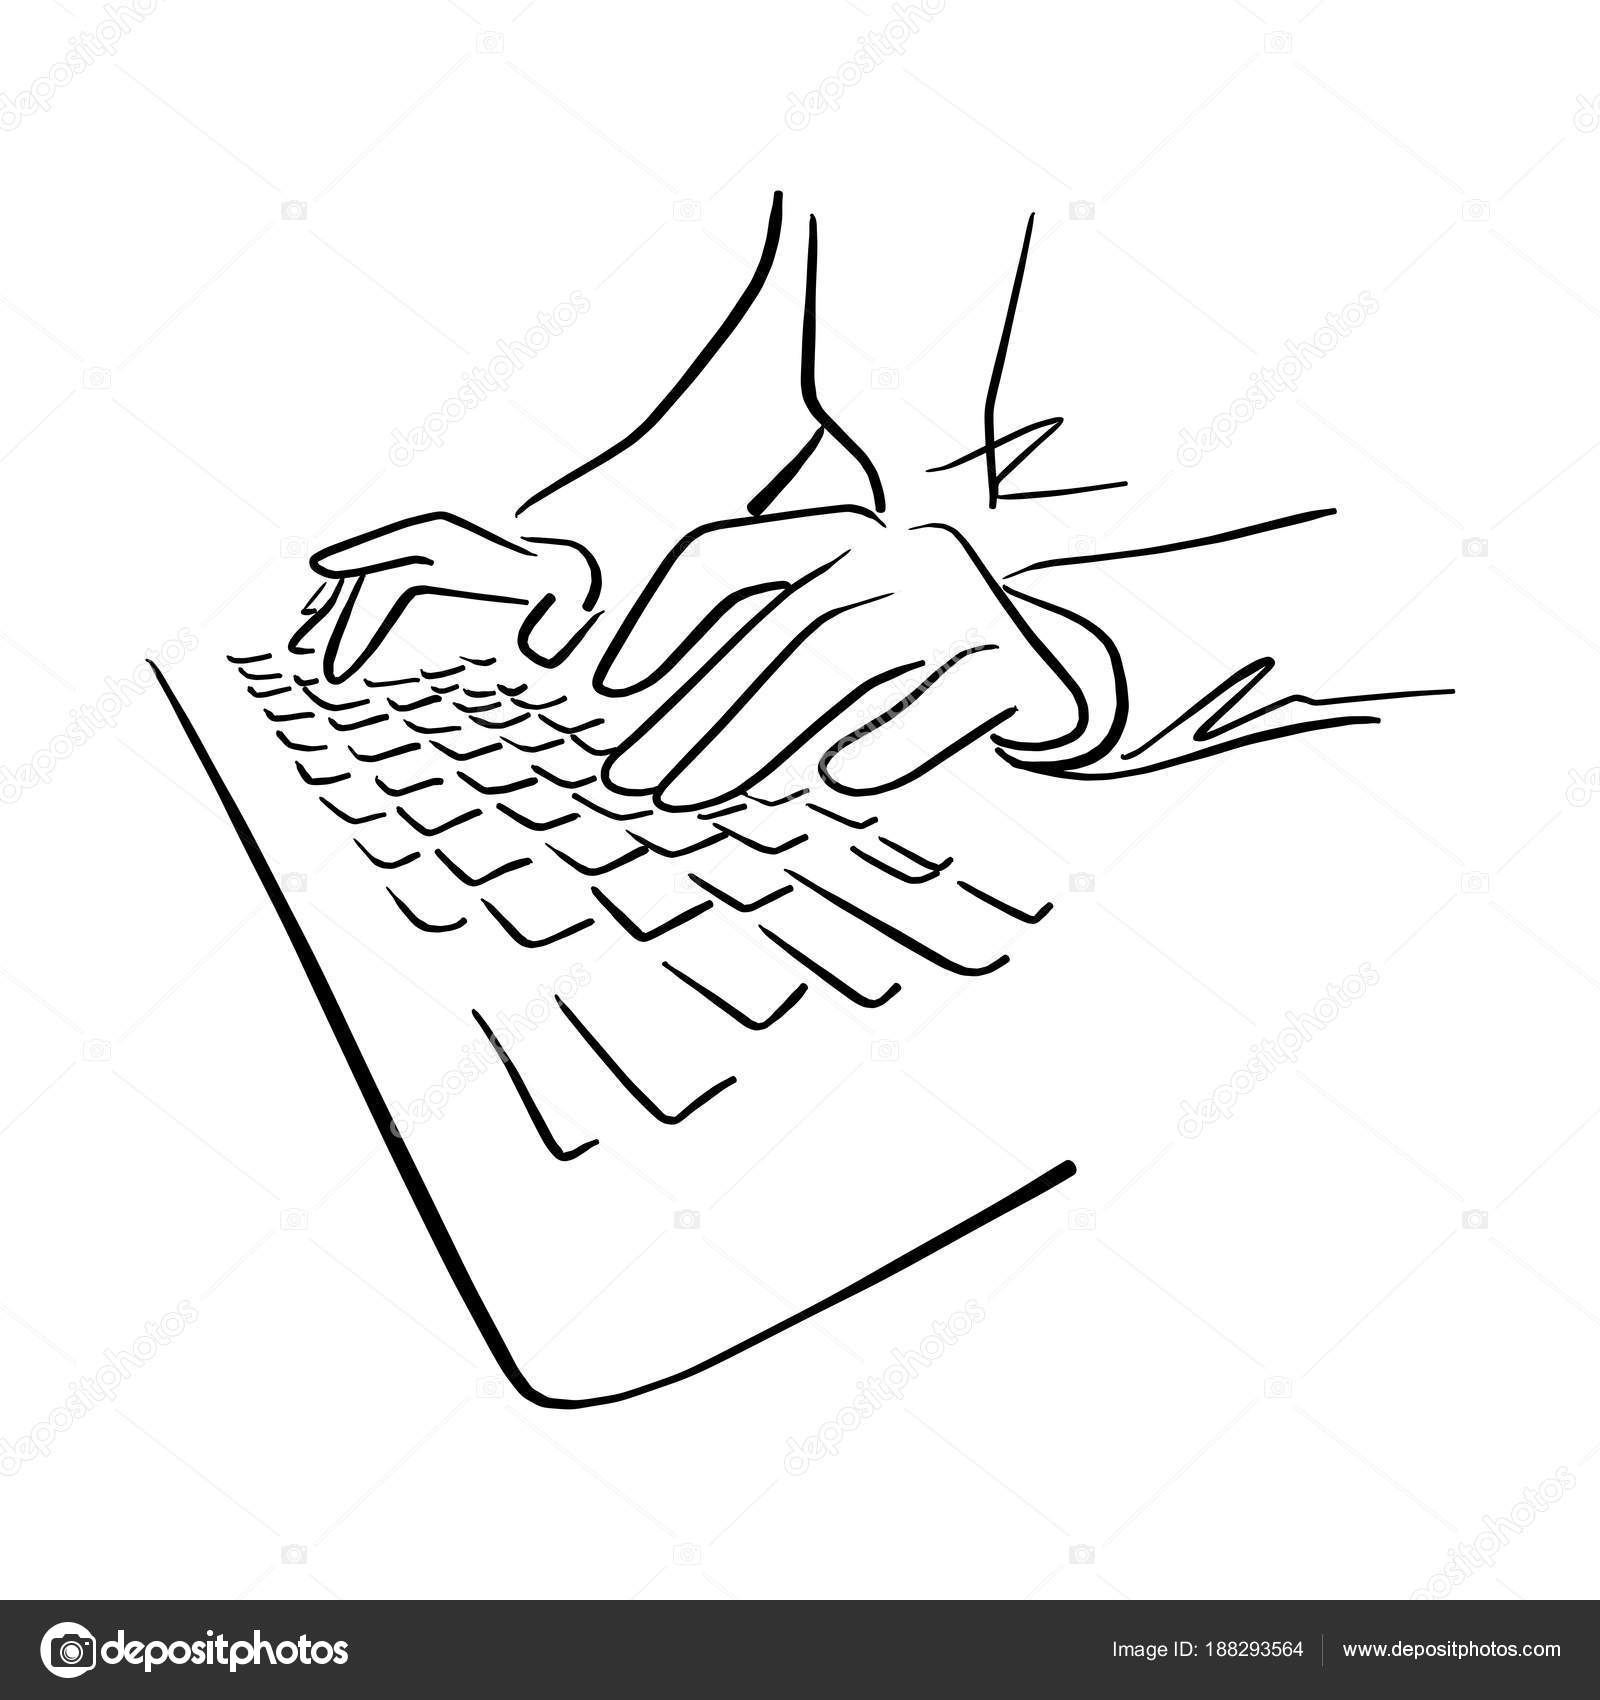 Hand Using Keyboard Of Computer Vector Illustration Sketch Hand Drawn With Black Lines Isolated On White Background Stock Vector C A3701027d 188293564